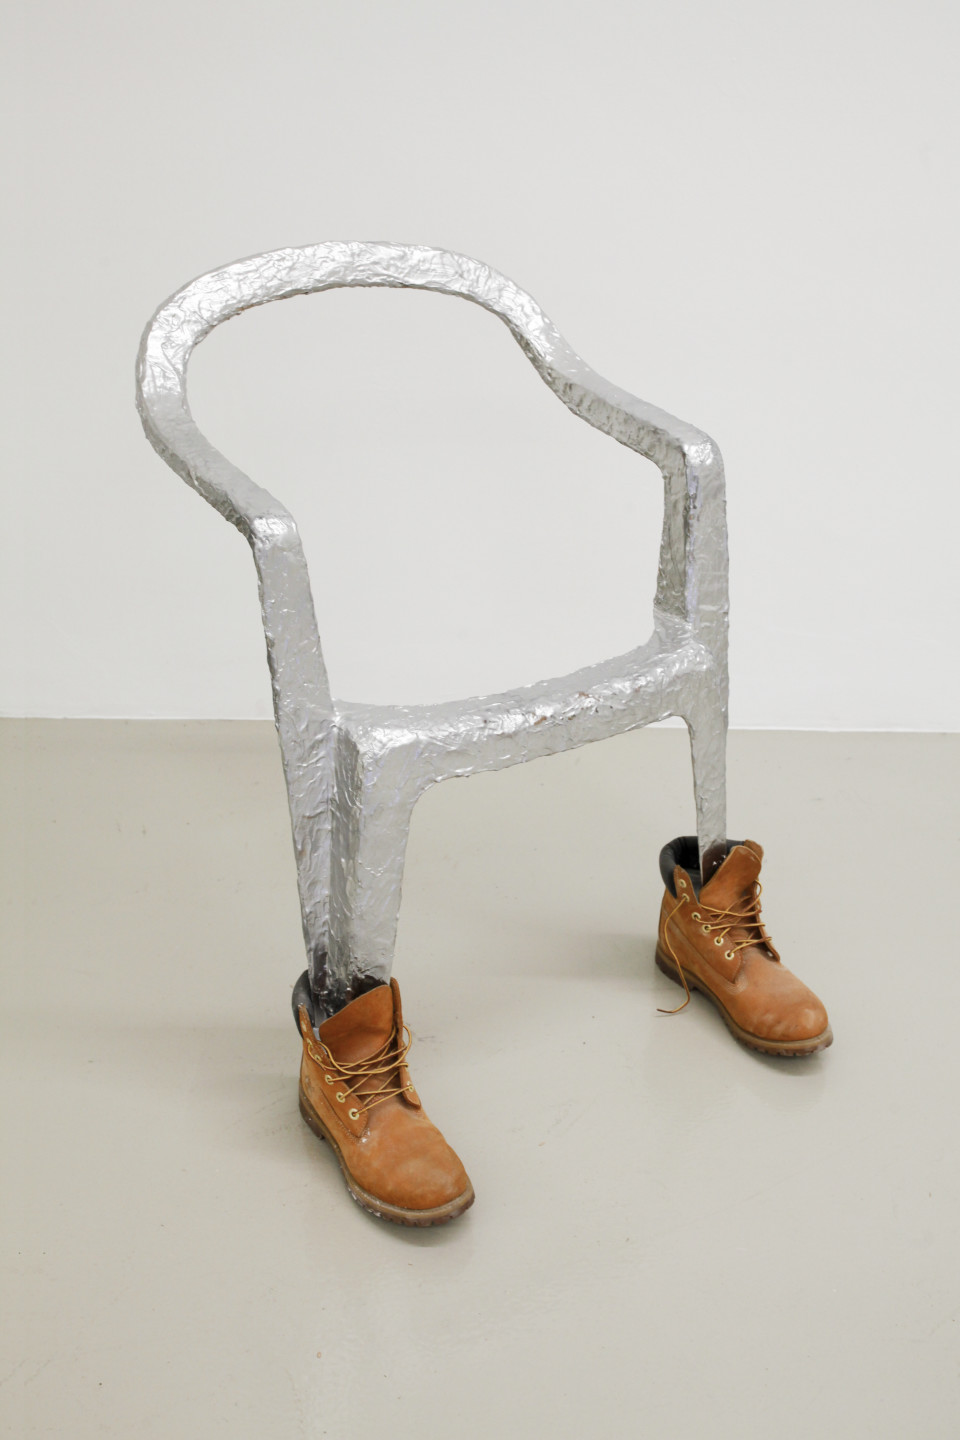 Lindsay Lawson  Jan Jansen, 2018  Garden chair, timberlands, latex, acrylic  83 x 86 x 84 cm 32 5/8 x 33 7/8 x 33 1/8 in